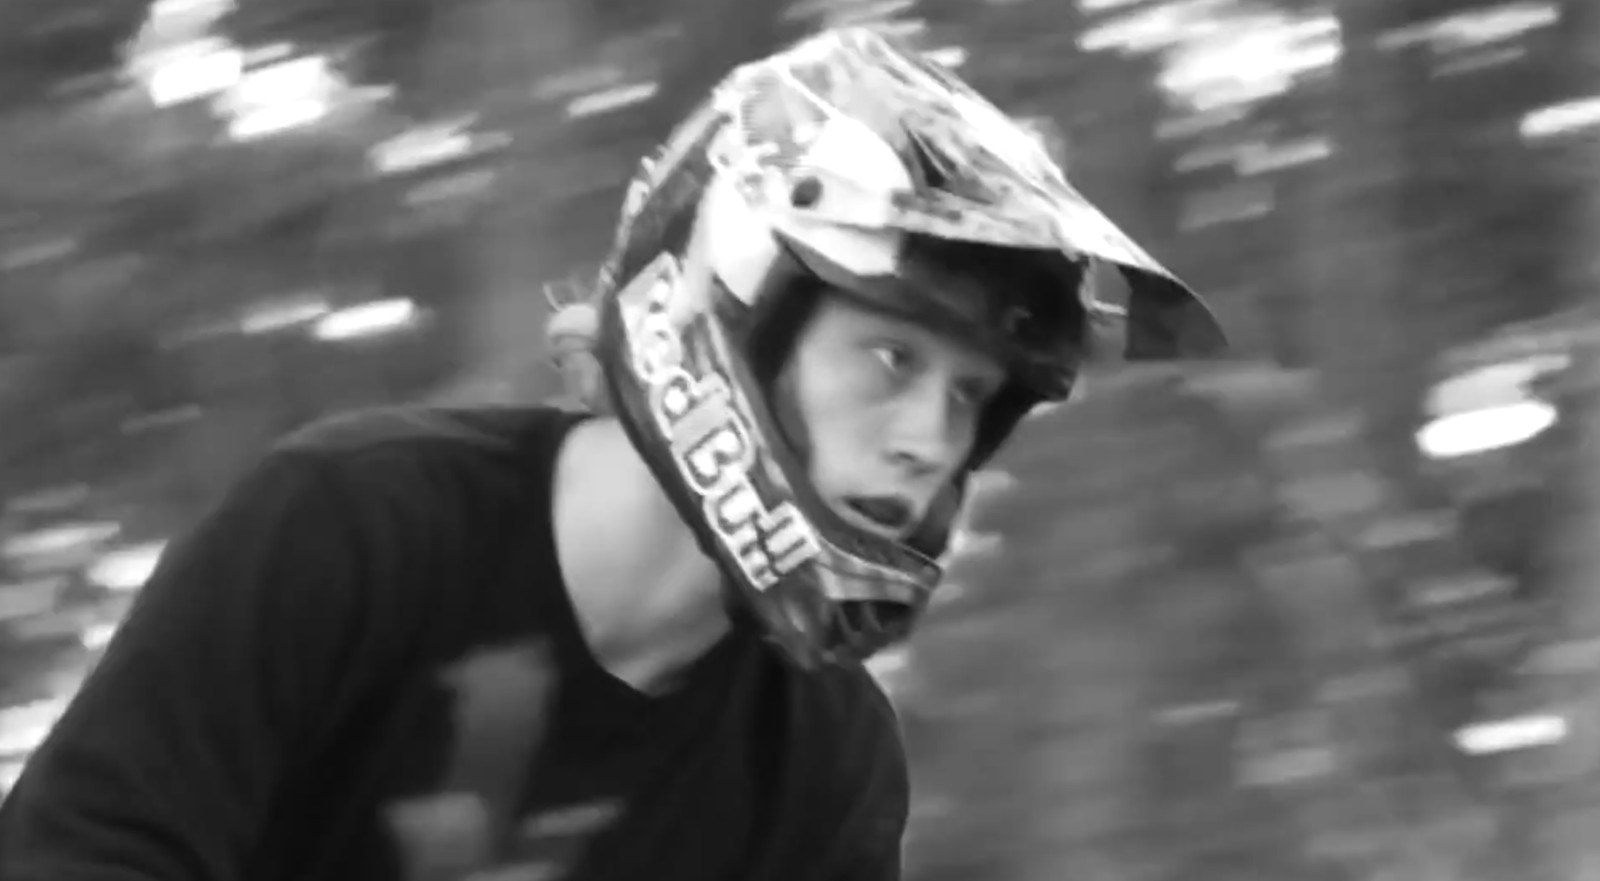 To the Point, All Action - Emil Johansson's Dad Cam Edit